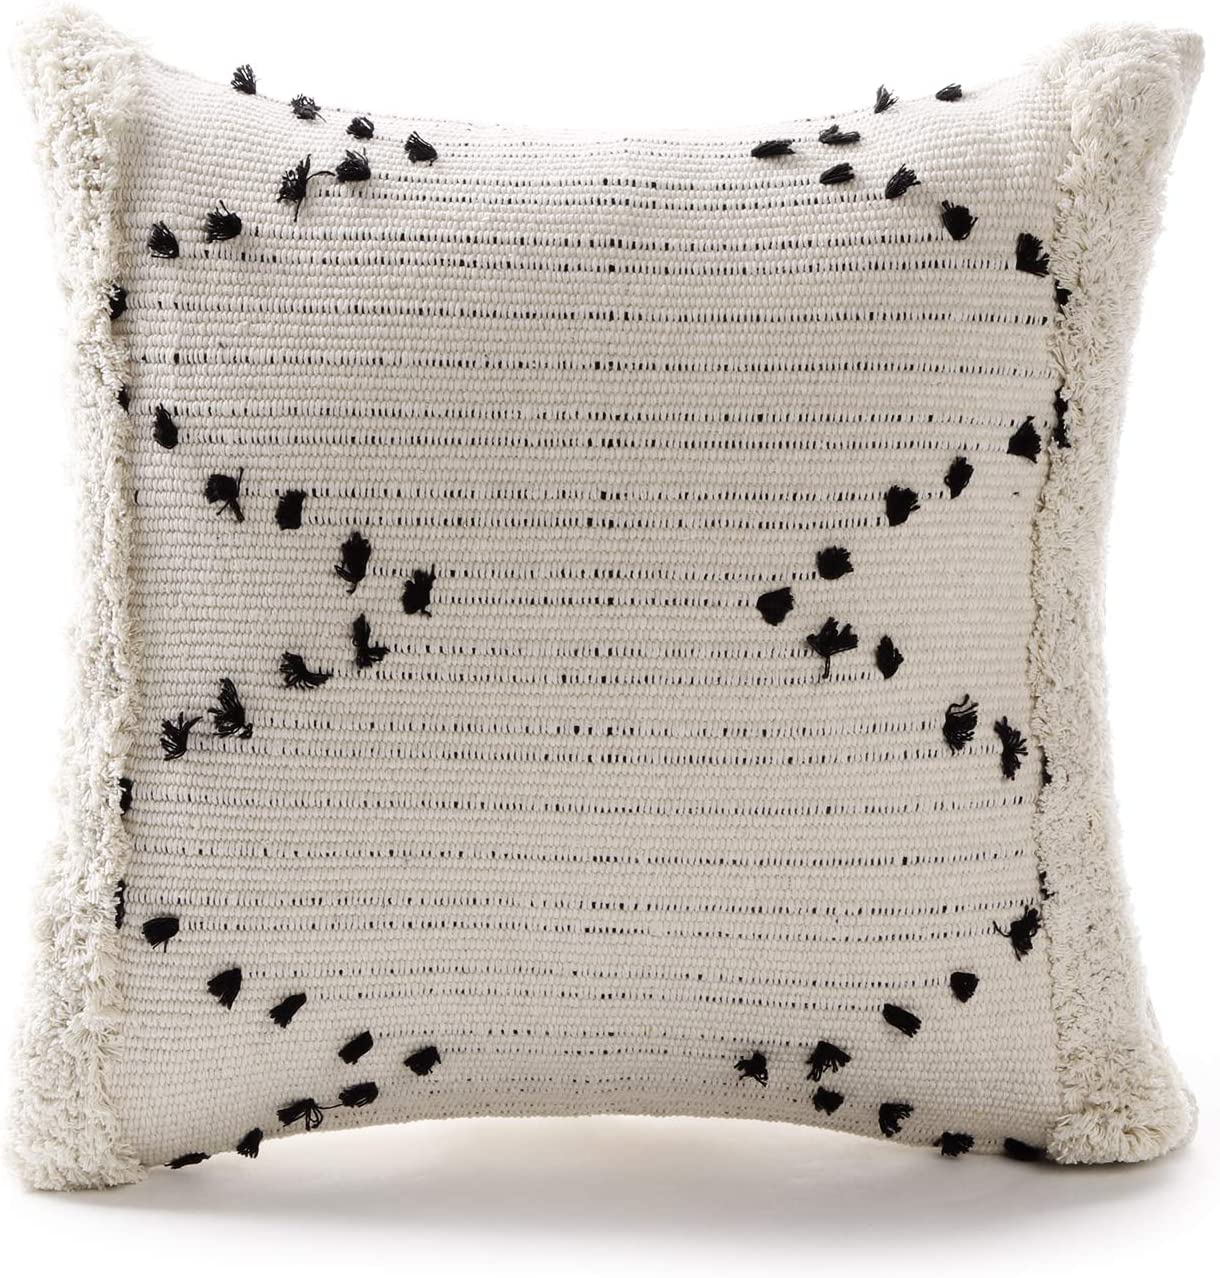 Ailsan Hand Woven Tufted Throw Pillows Cover-Moroccan Square Woven Cream and Black Chic Diamond Tassels Throw Pillow Geometric Pattern Pillow Case for Farmhouse Sofa Couch Bedroom Decor